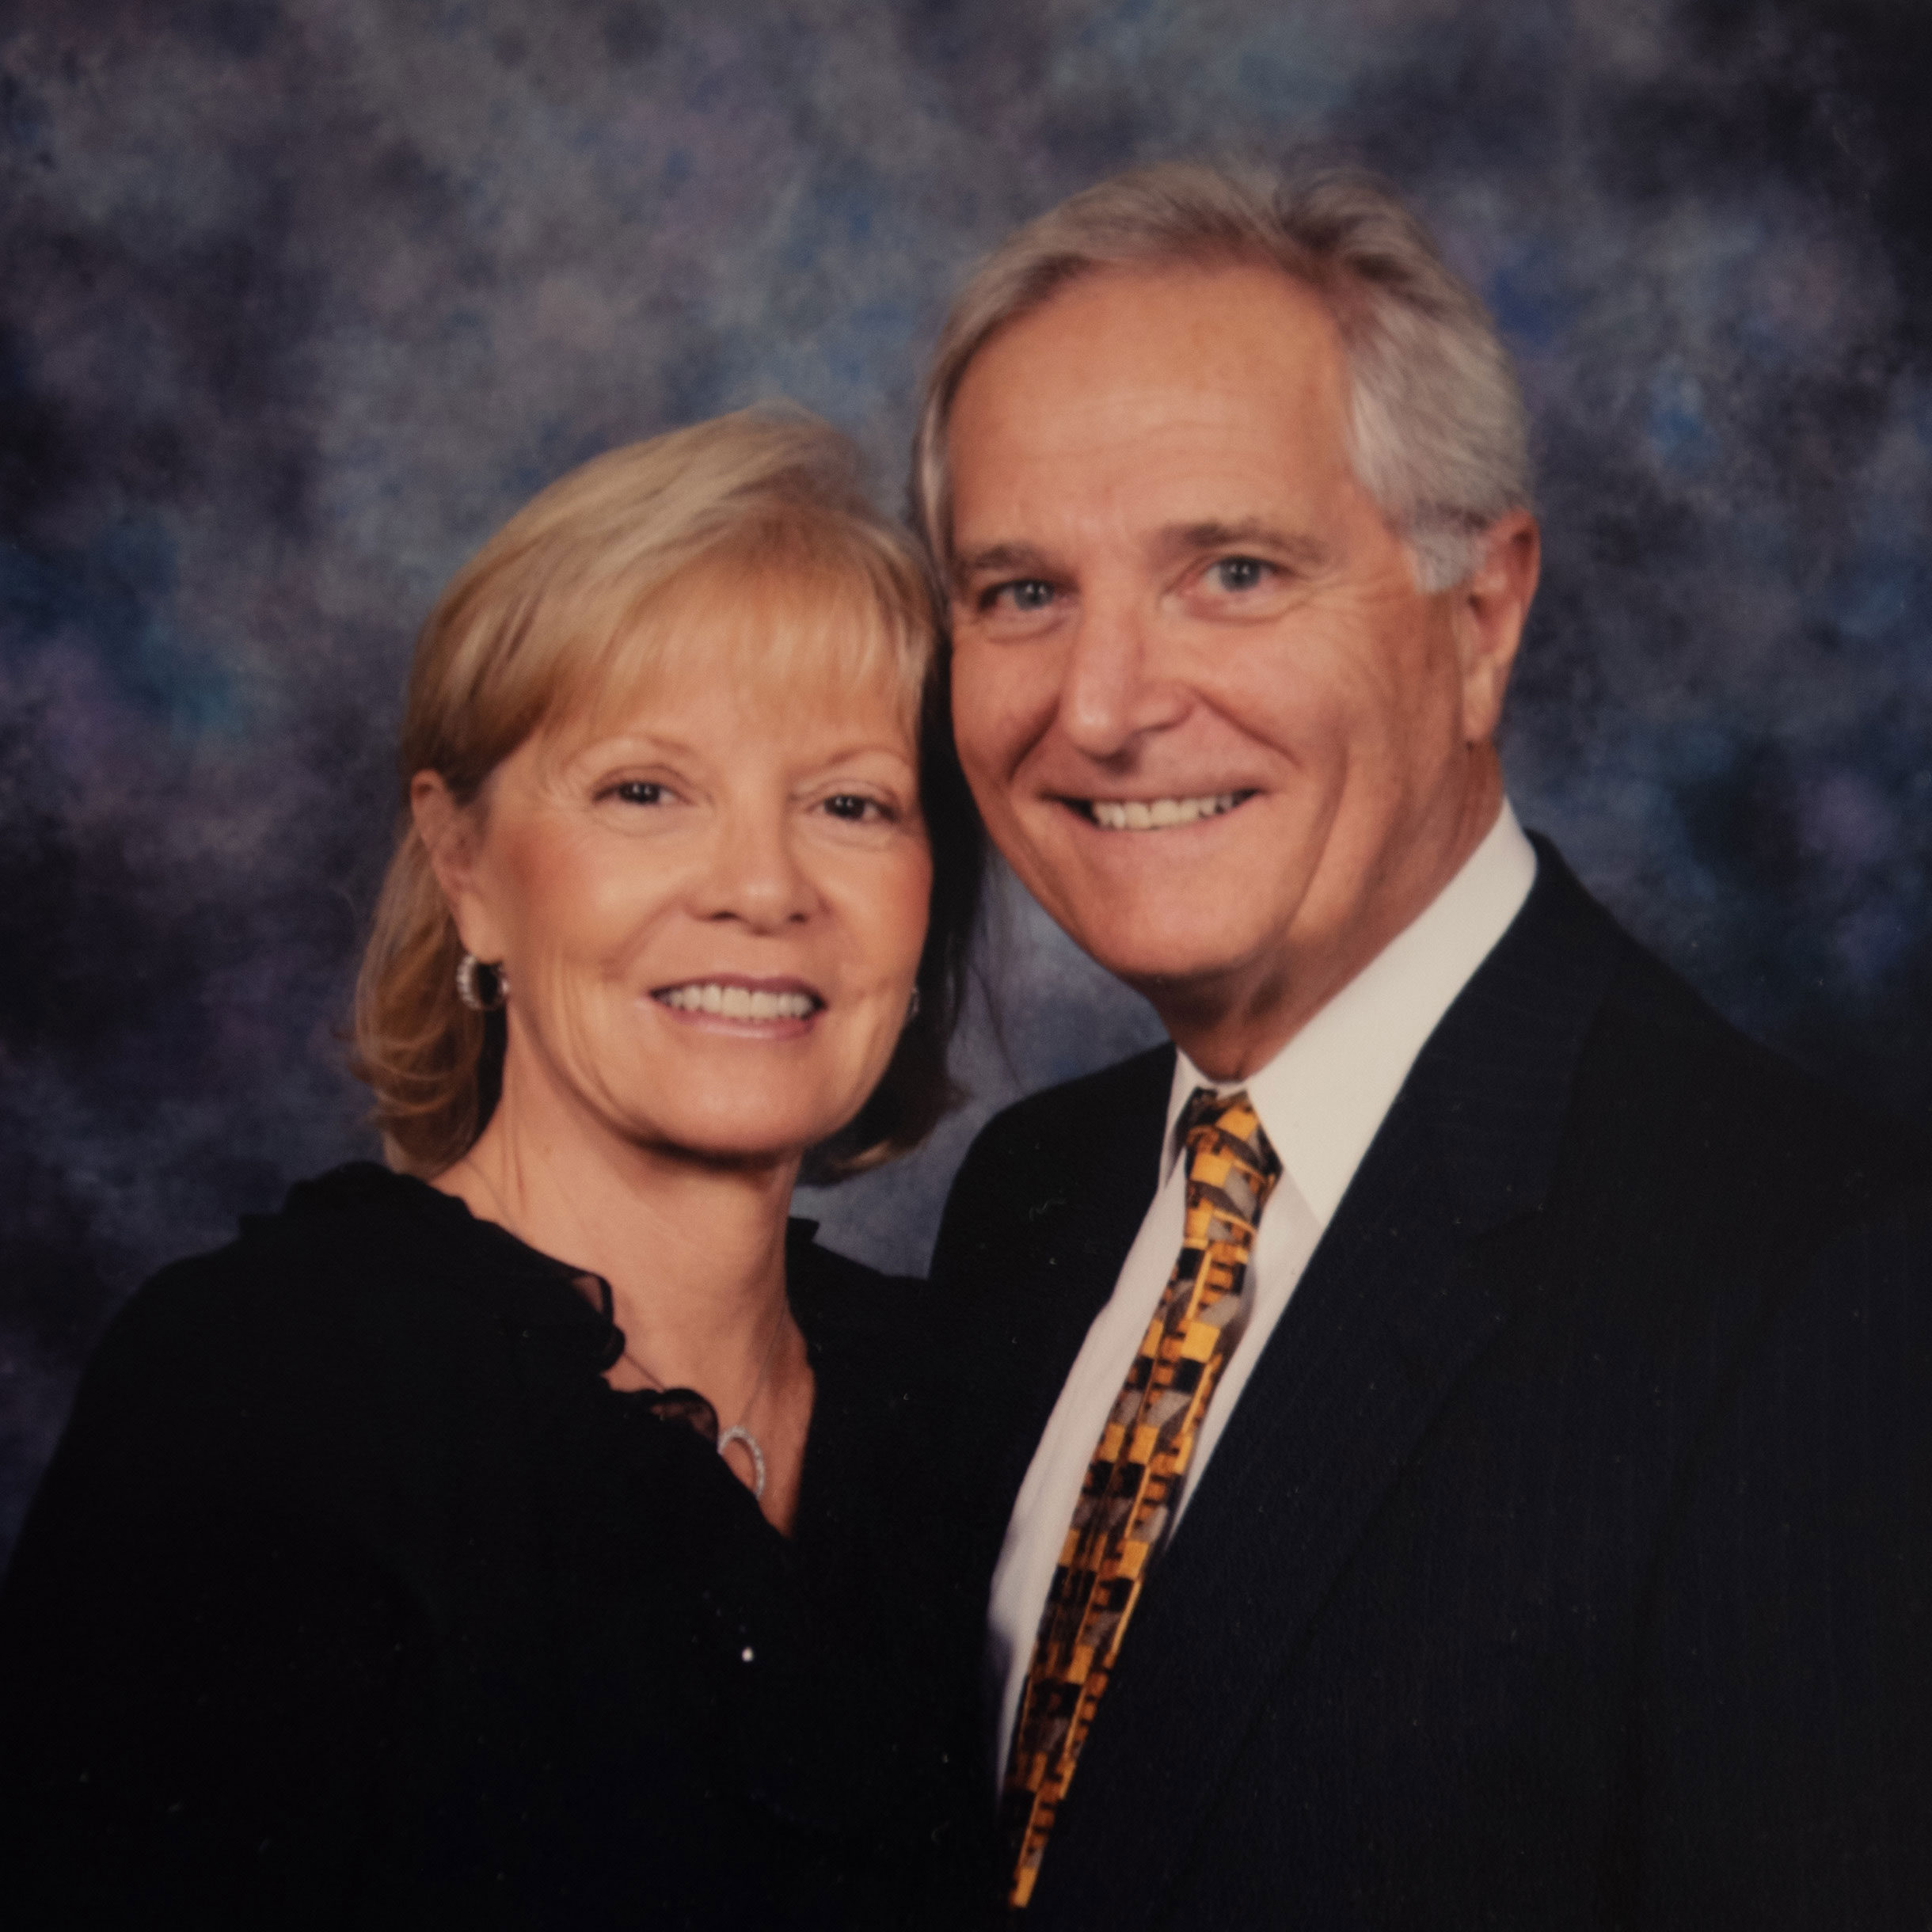 Edward and Sandra Abrahamian pledged $4 million to USC to support scholarships and student services in honor of his late parents and brother. (Photo/Courtesy of Edward Abrahamian)